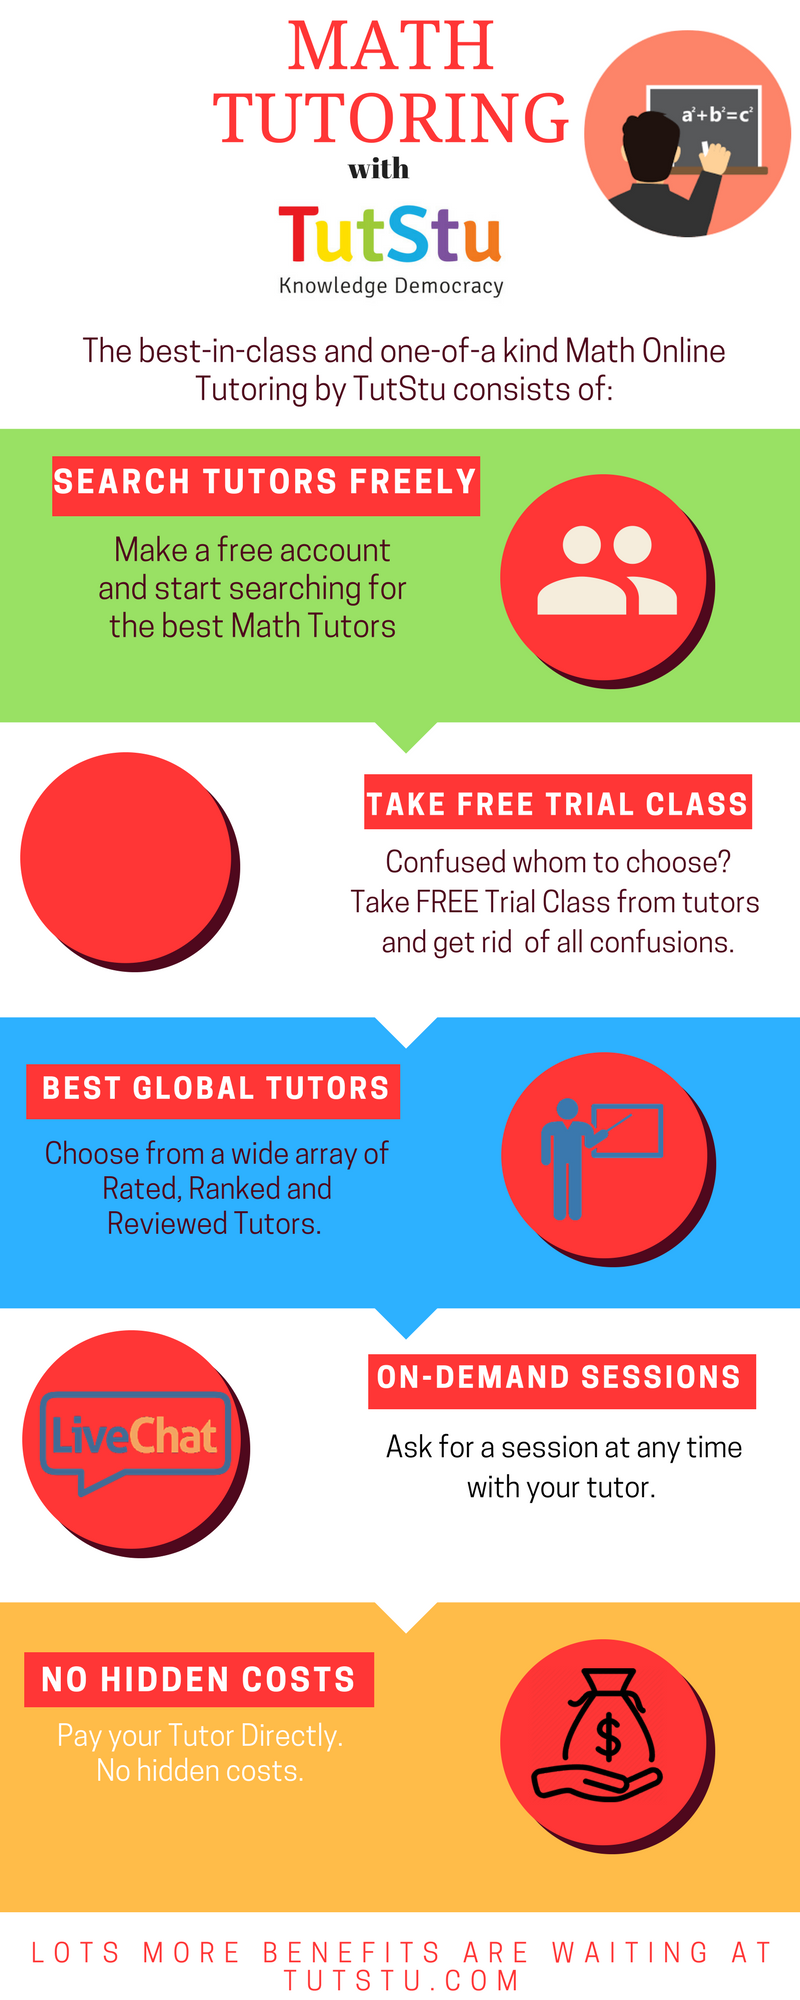 Online Math Tutors For K 12 To College Level With Free Trial